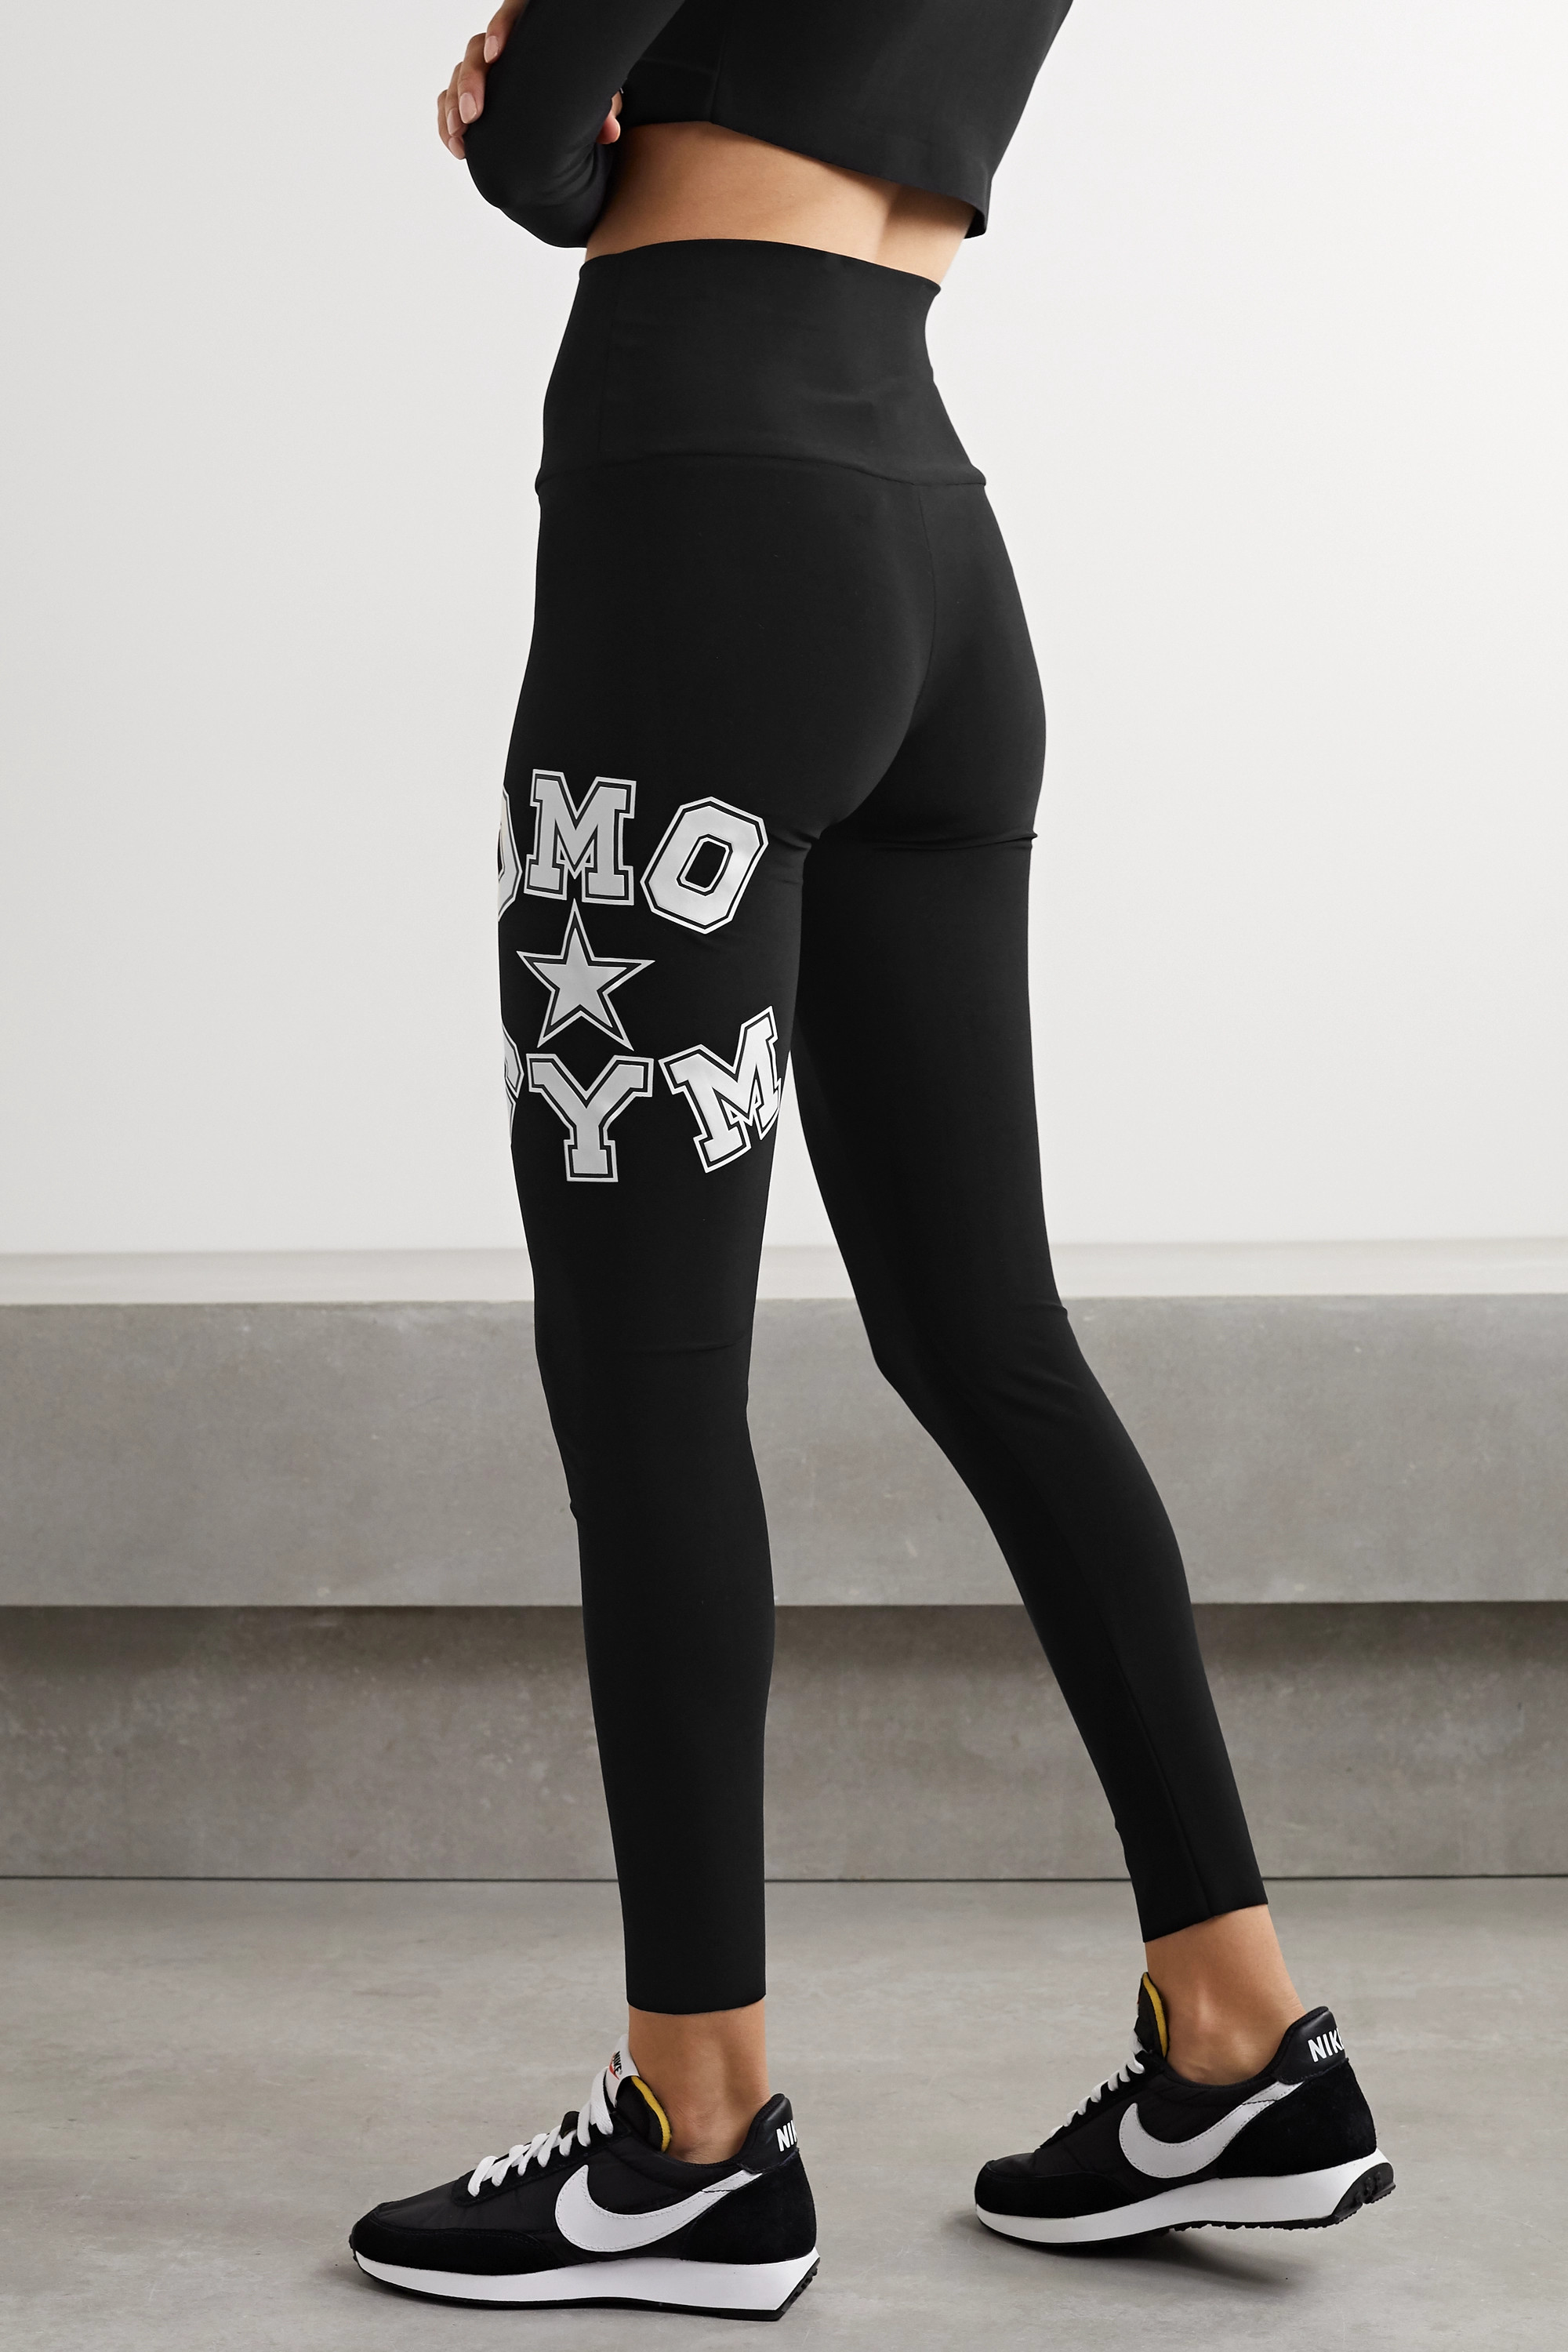 NORMA KAMALI OMO printed stretch-jersey leggings